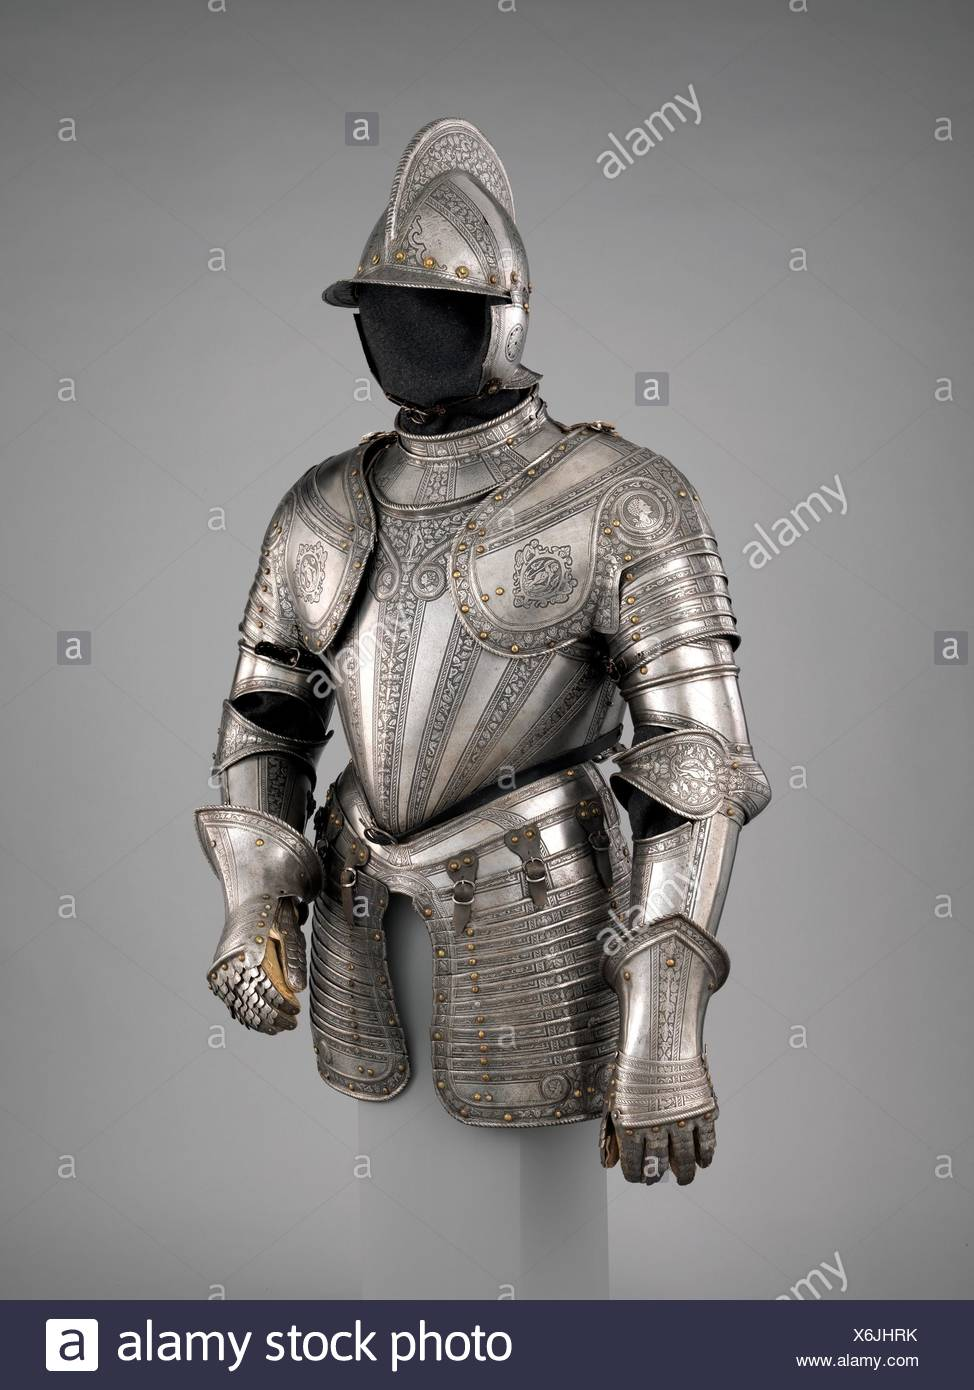 Infantry Armor. Armorer: Upper plate of the gorget, skirt lames, and cheek pieces made by Daniel Tachaux (French, 1857-1928, active in France and - Stock Image